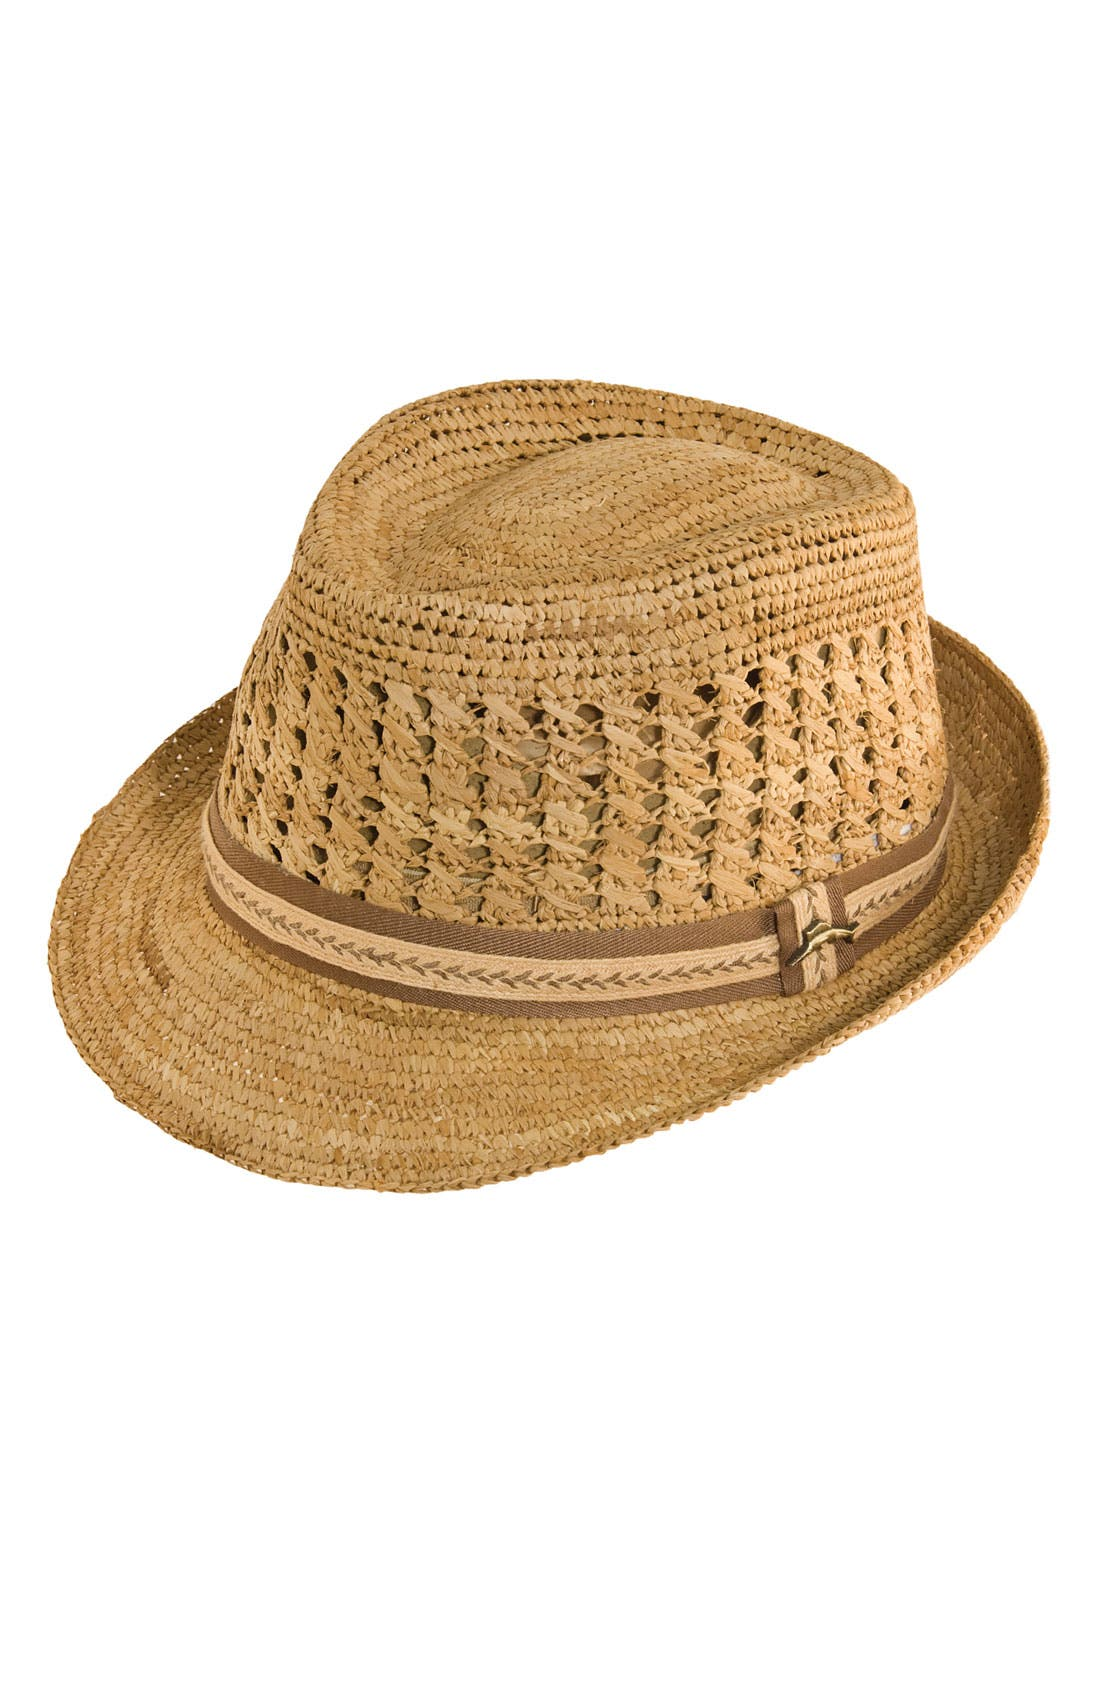 Alternate Image 1 Selected - Tommy Bahama Crochet Raffia Fedora